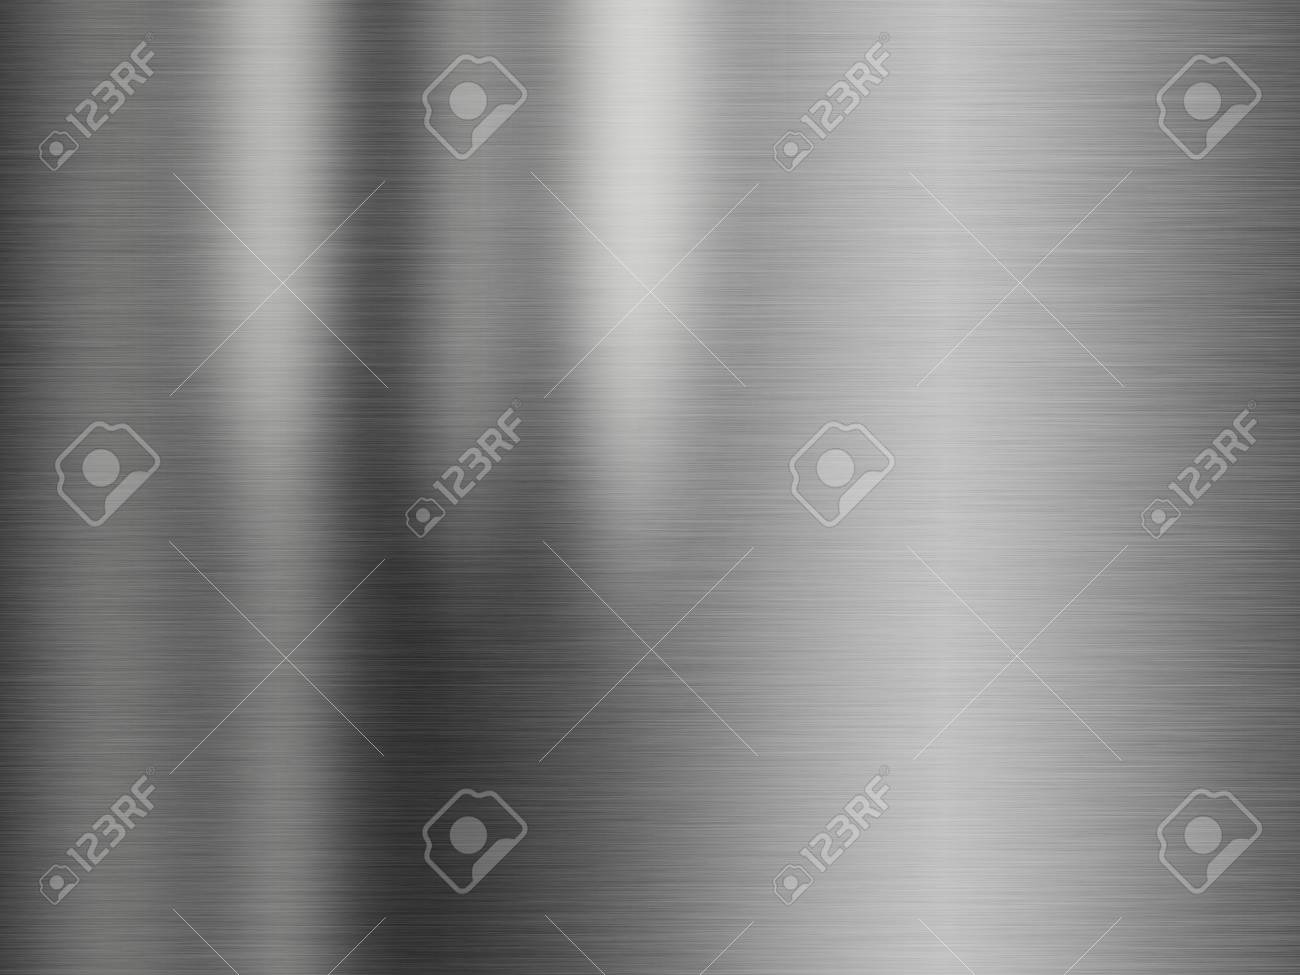 Stainless steel texture or metal texture background Banque d'images - 75076719